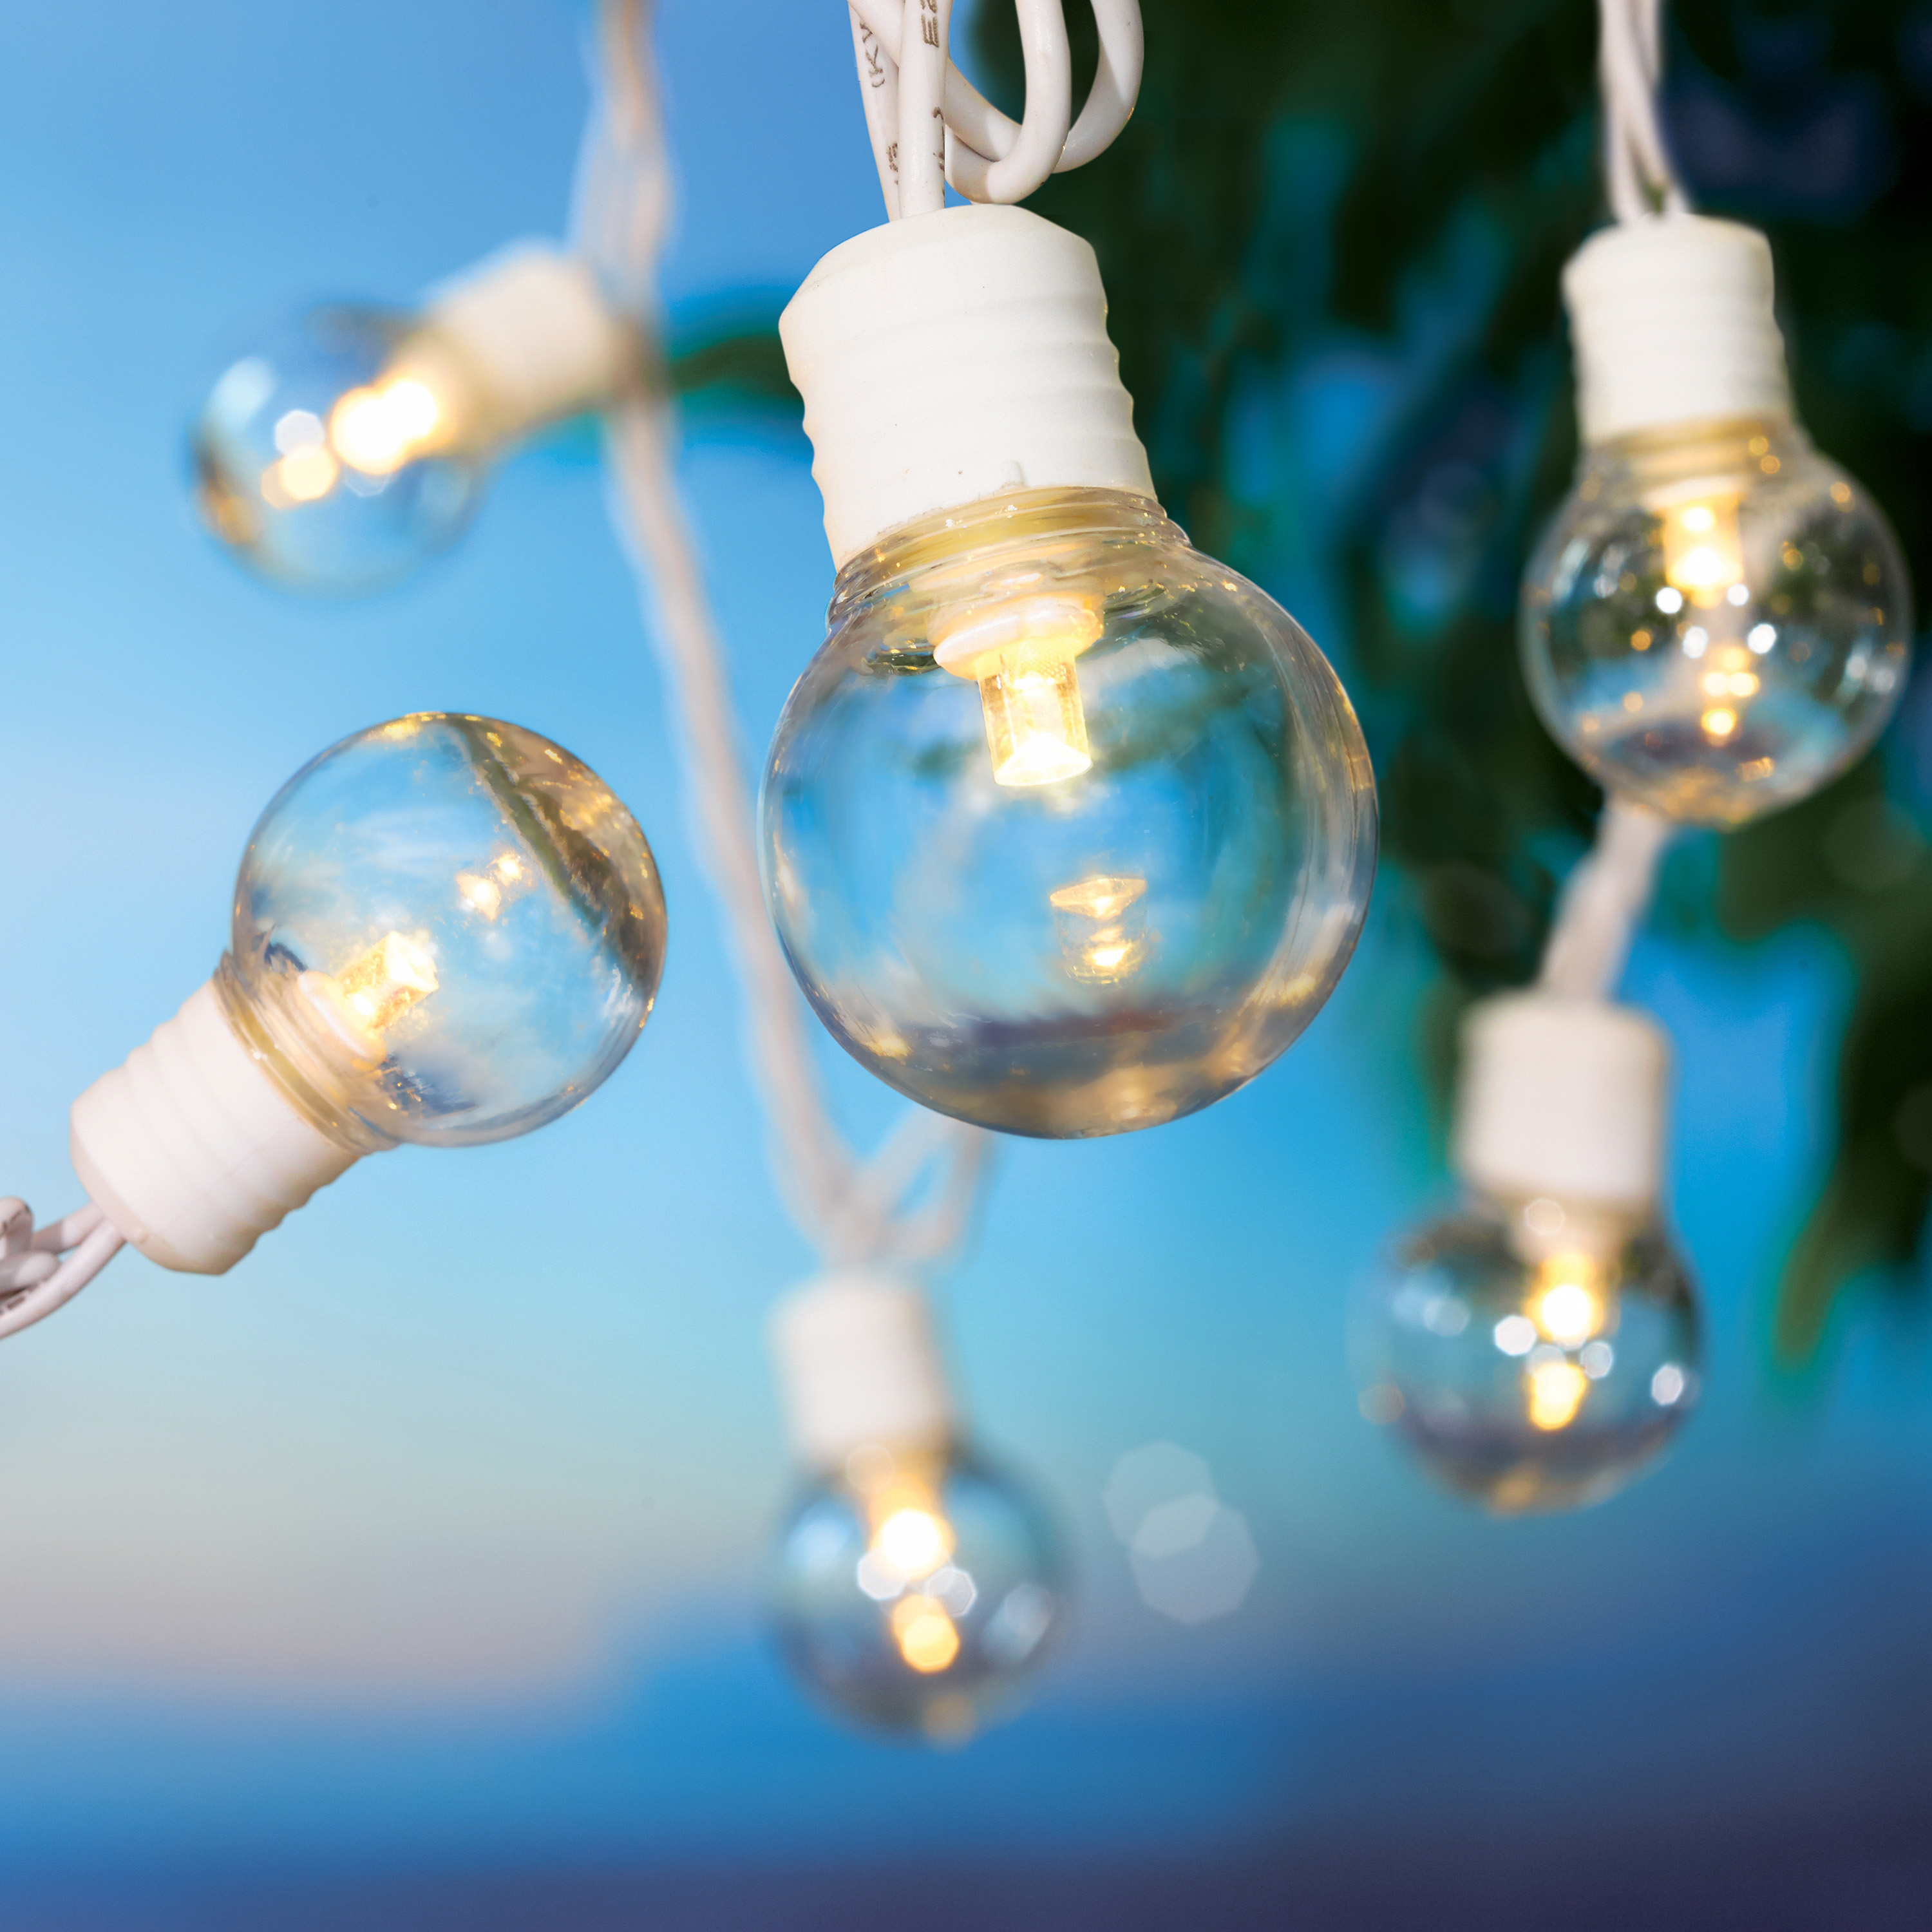 Mainstays 100 Count LED Clear Outdoor Globe Lights - White